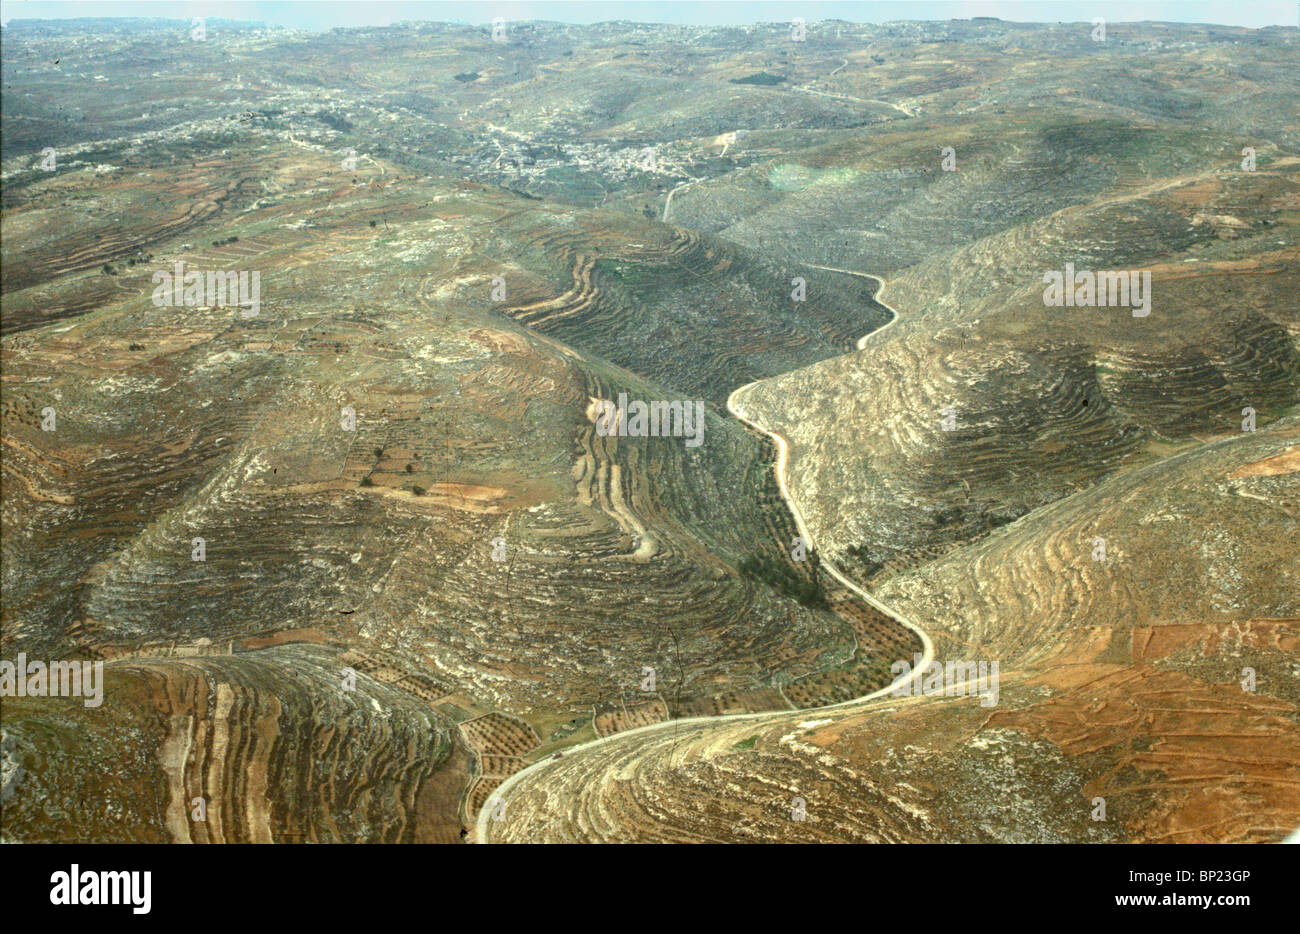 TEKOAH - VILLAGE IN THE HILLS OF JUDEA SOUTH OF JERUSALEM. BIRTHPLACE OF AMOS THE PROPHET. (AM. 1:1) PIC: VIEW OF - Stock Image